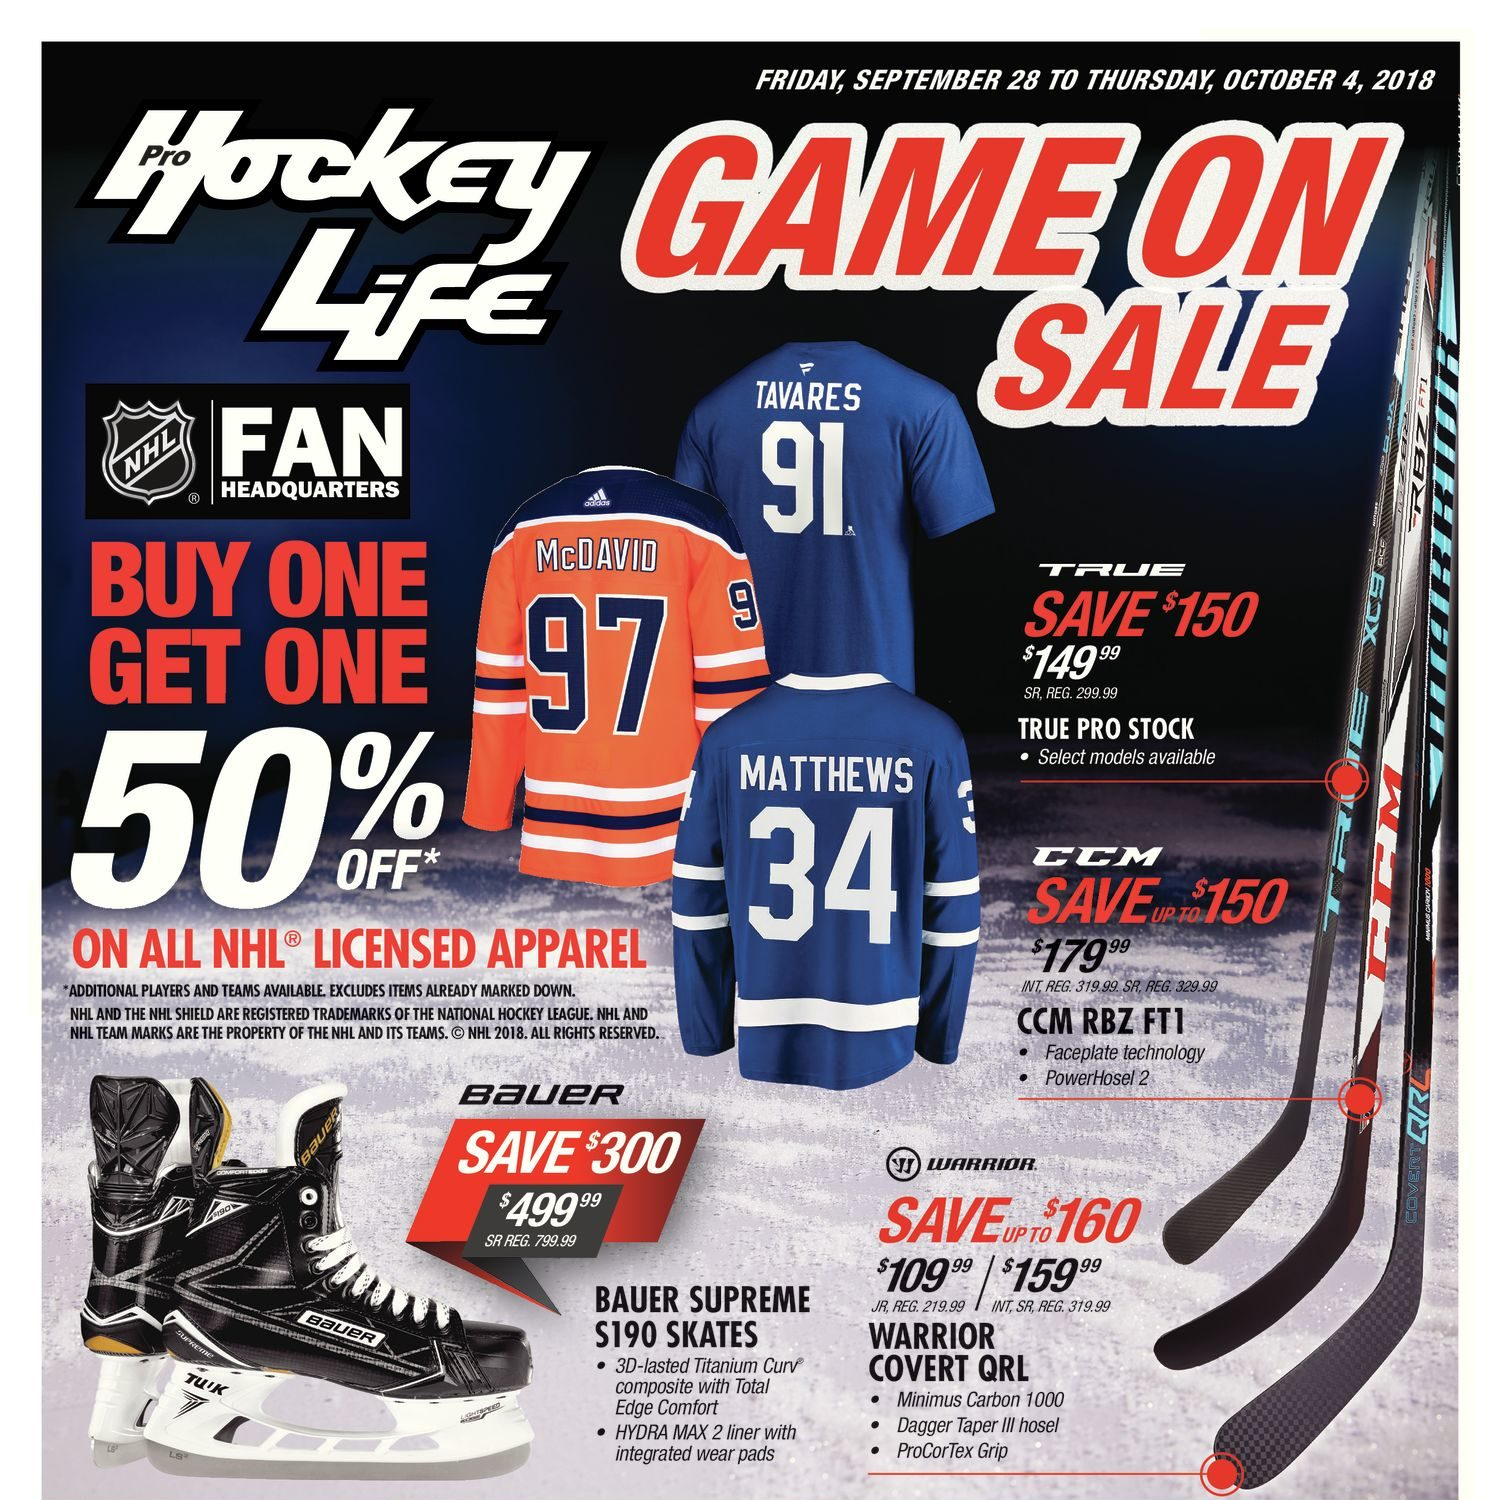 d49f07ba300 Pro Hockey Life Weekly Flyer - Game On Sale - Sep 28 – Oct 4 -  RedFlagDeals.com